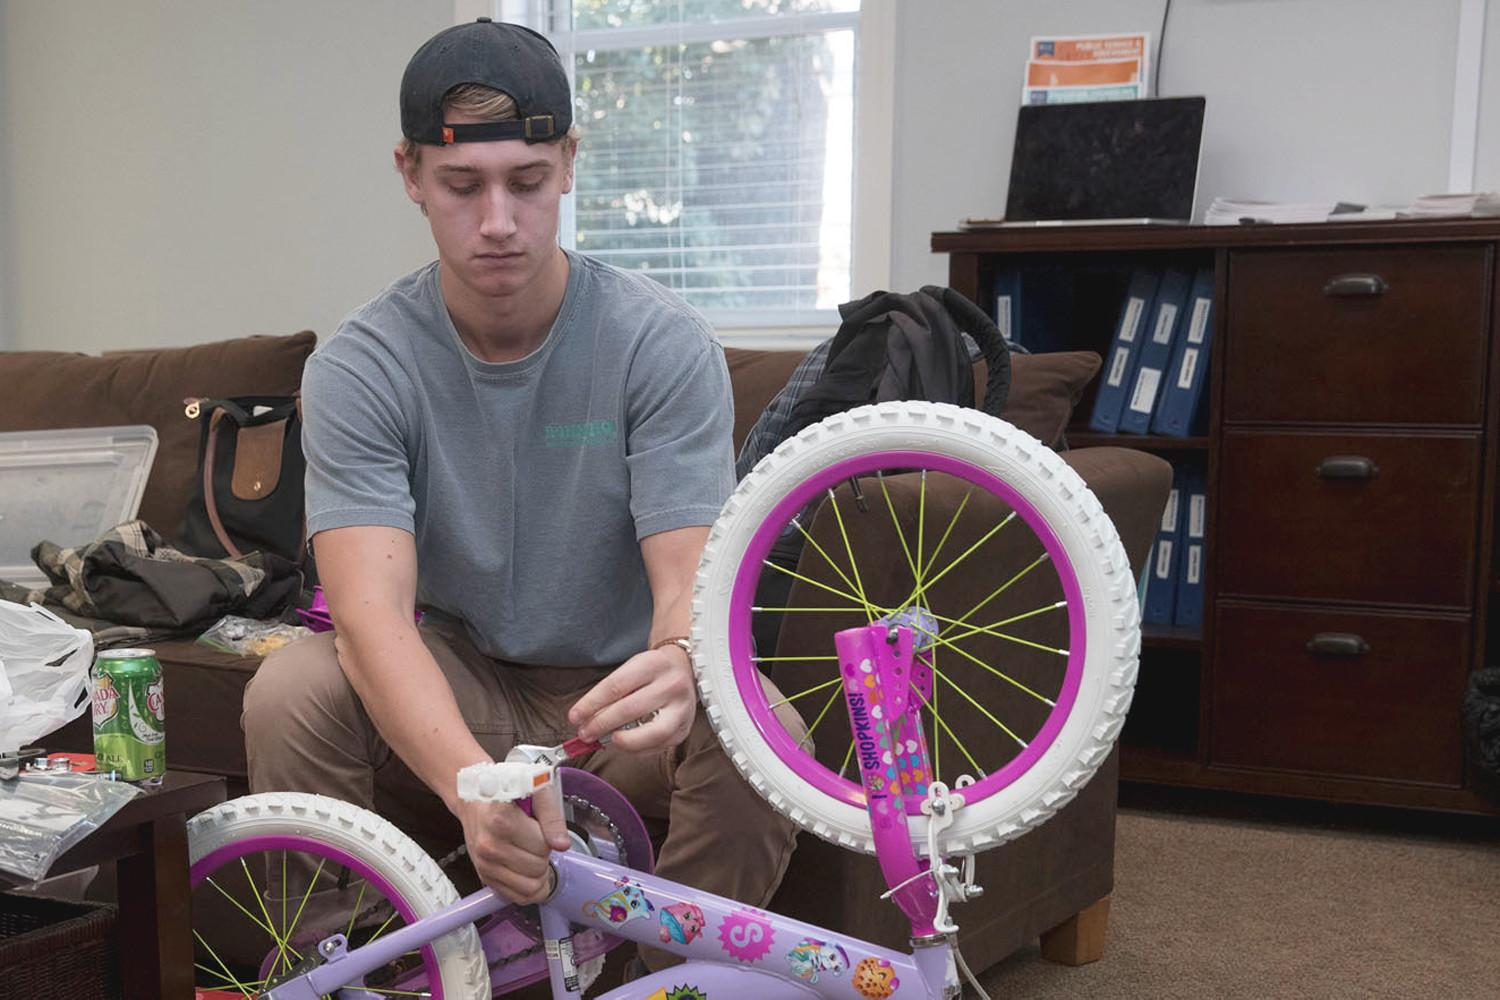 Aidan Kilrain, a third-year biology major and Holiday Sharing program director, assembles a bicycle for one of the Holiday Sharing gifts to a family in need.